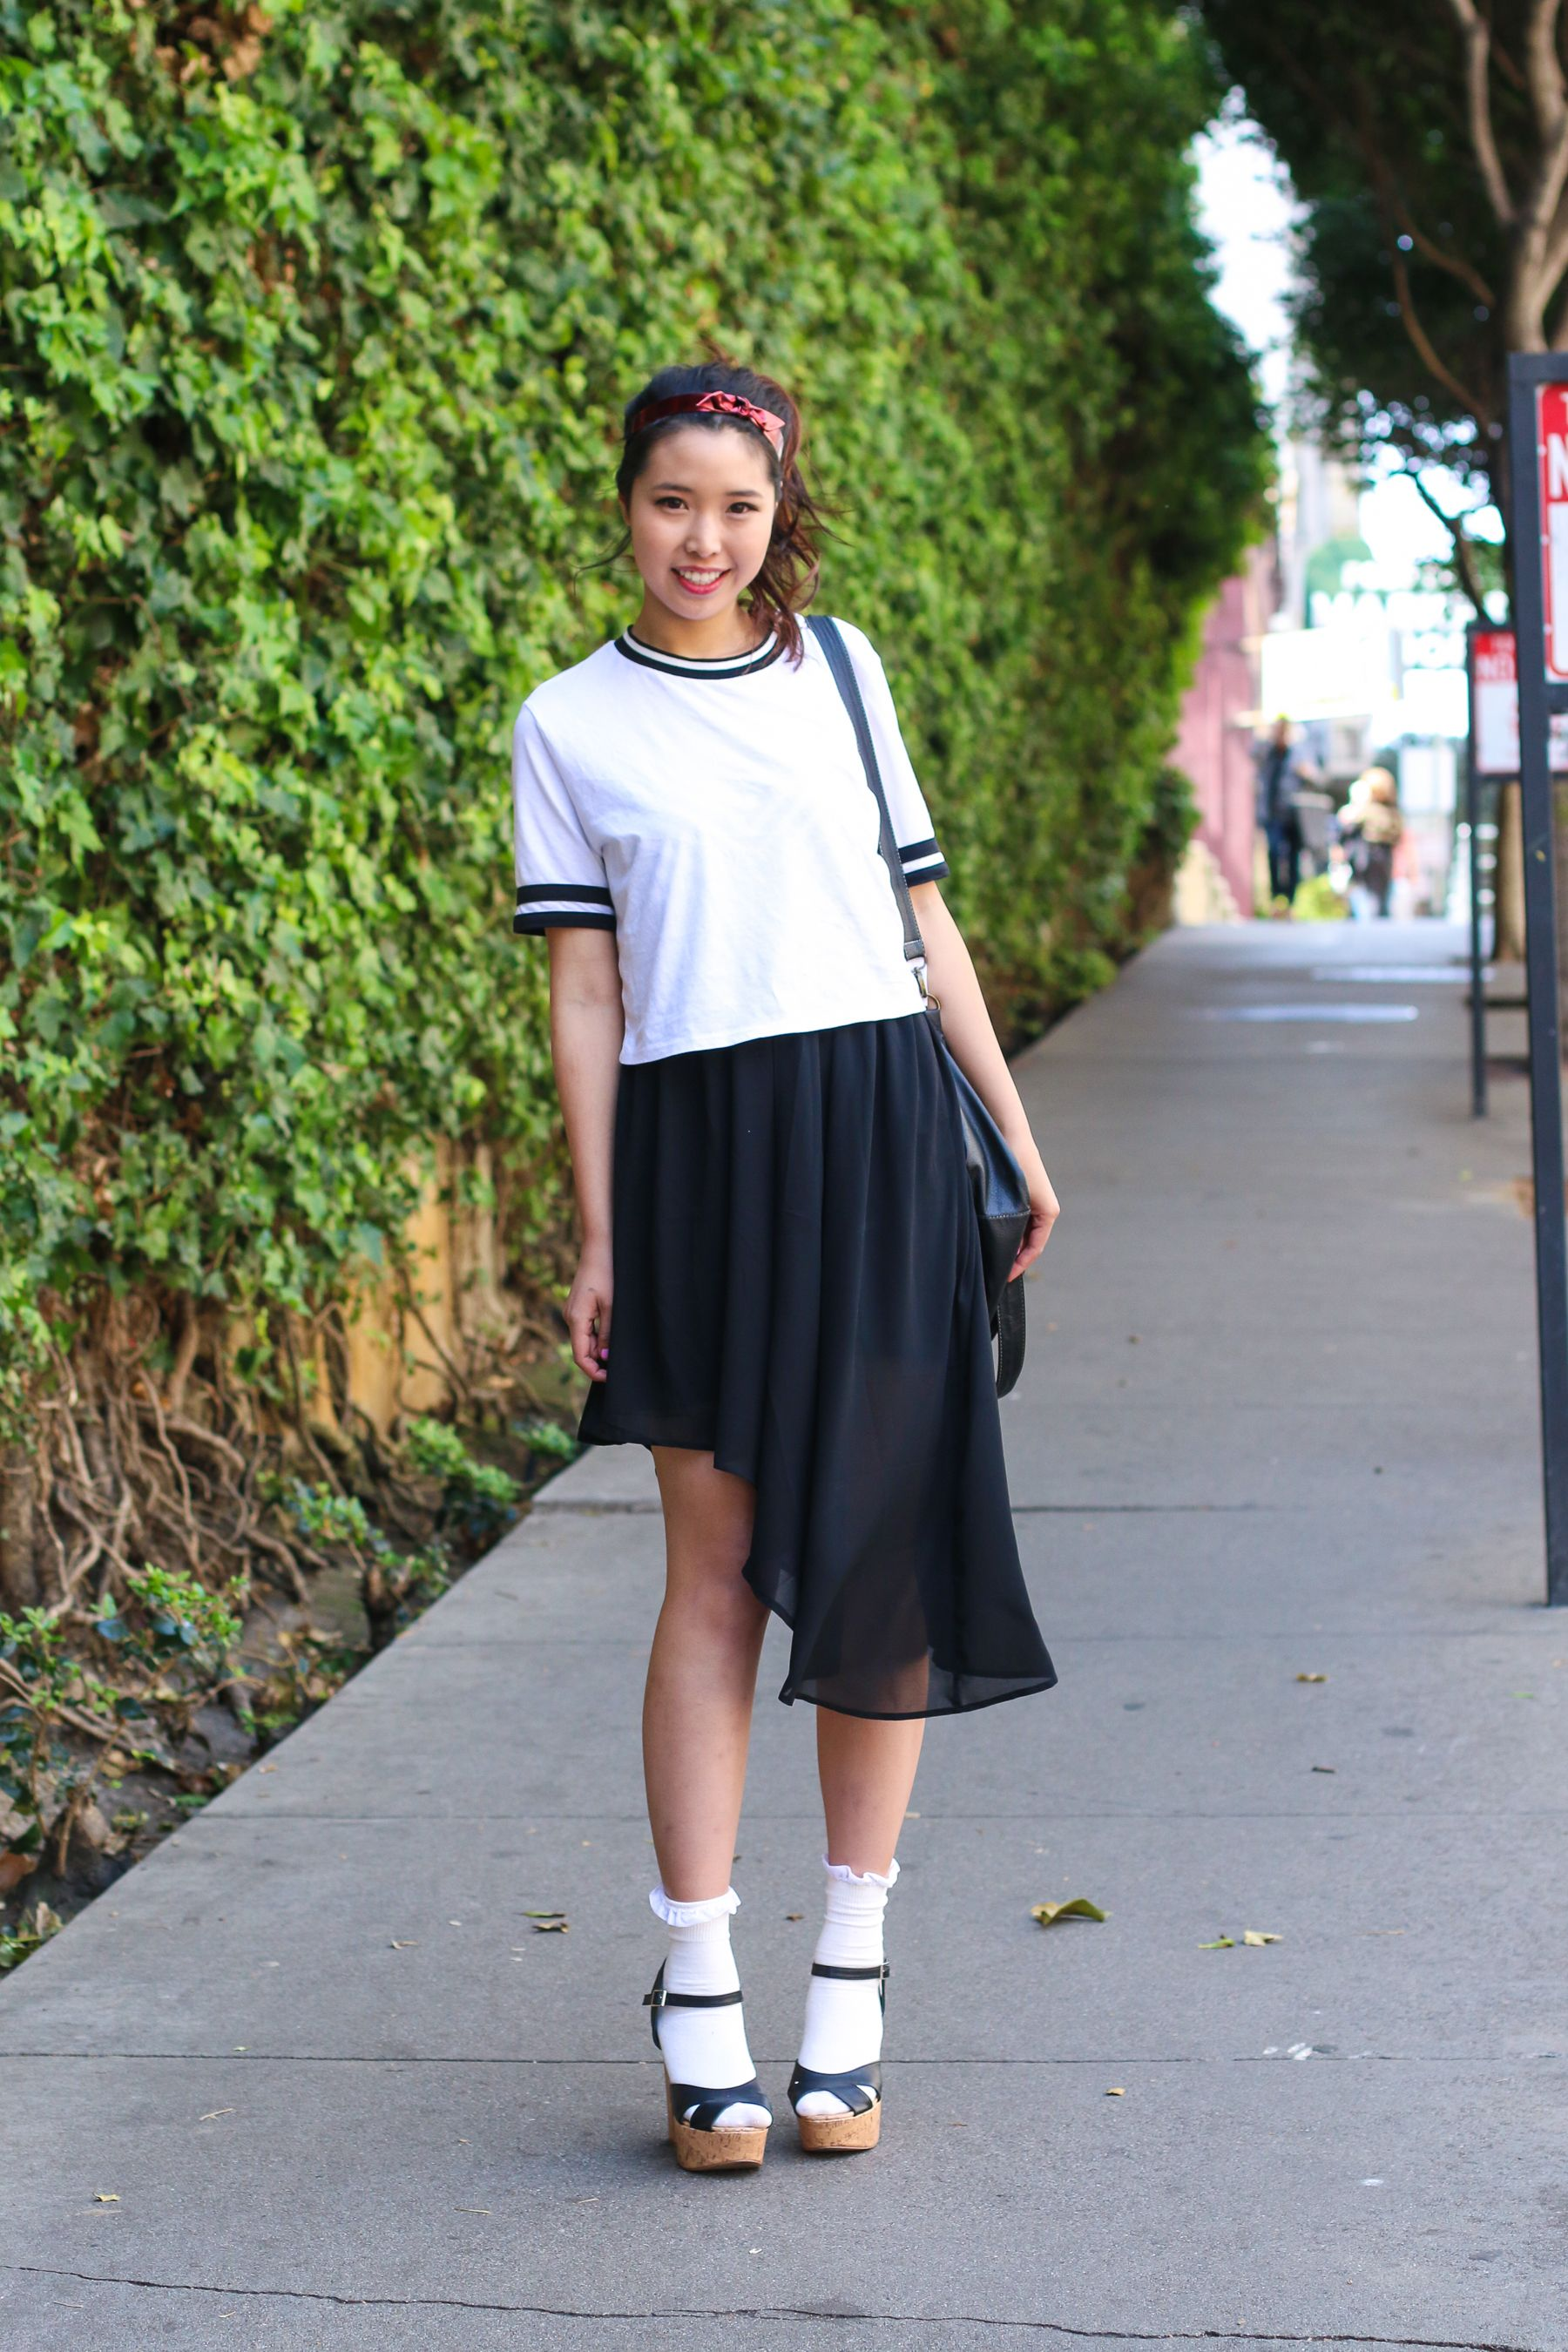 Ally Pin Up Ally Gong Ryan Chua Fashion Blogger Teenage High